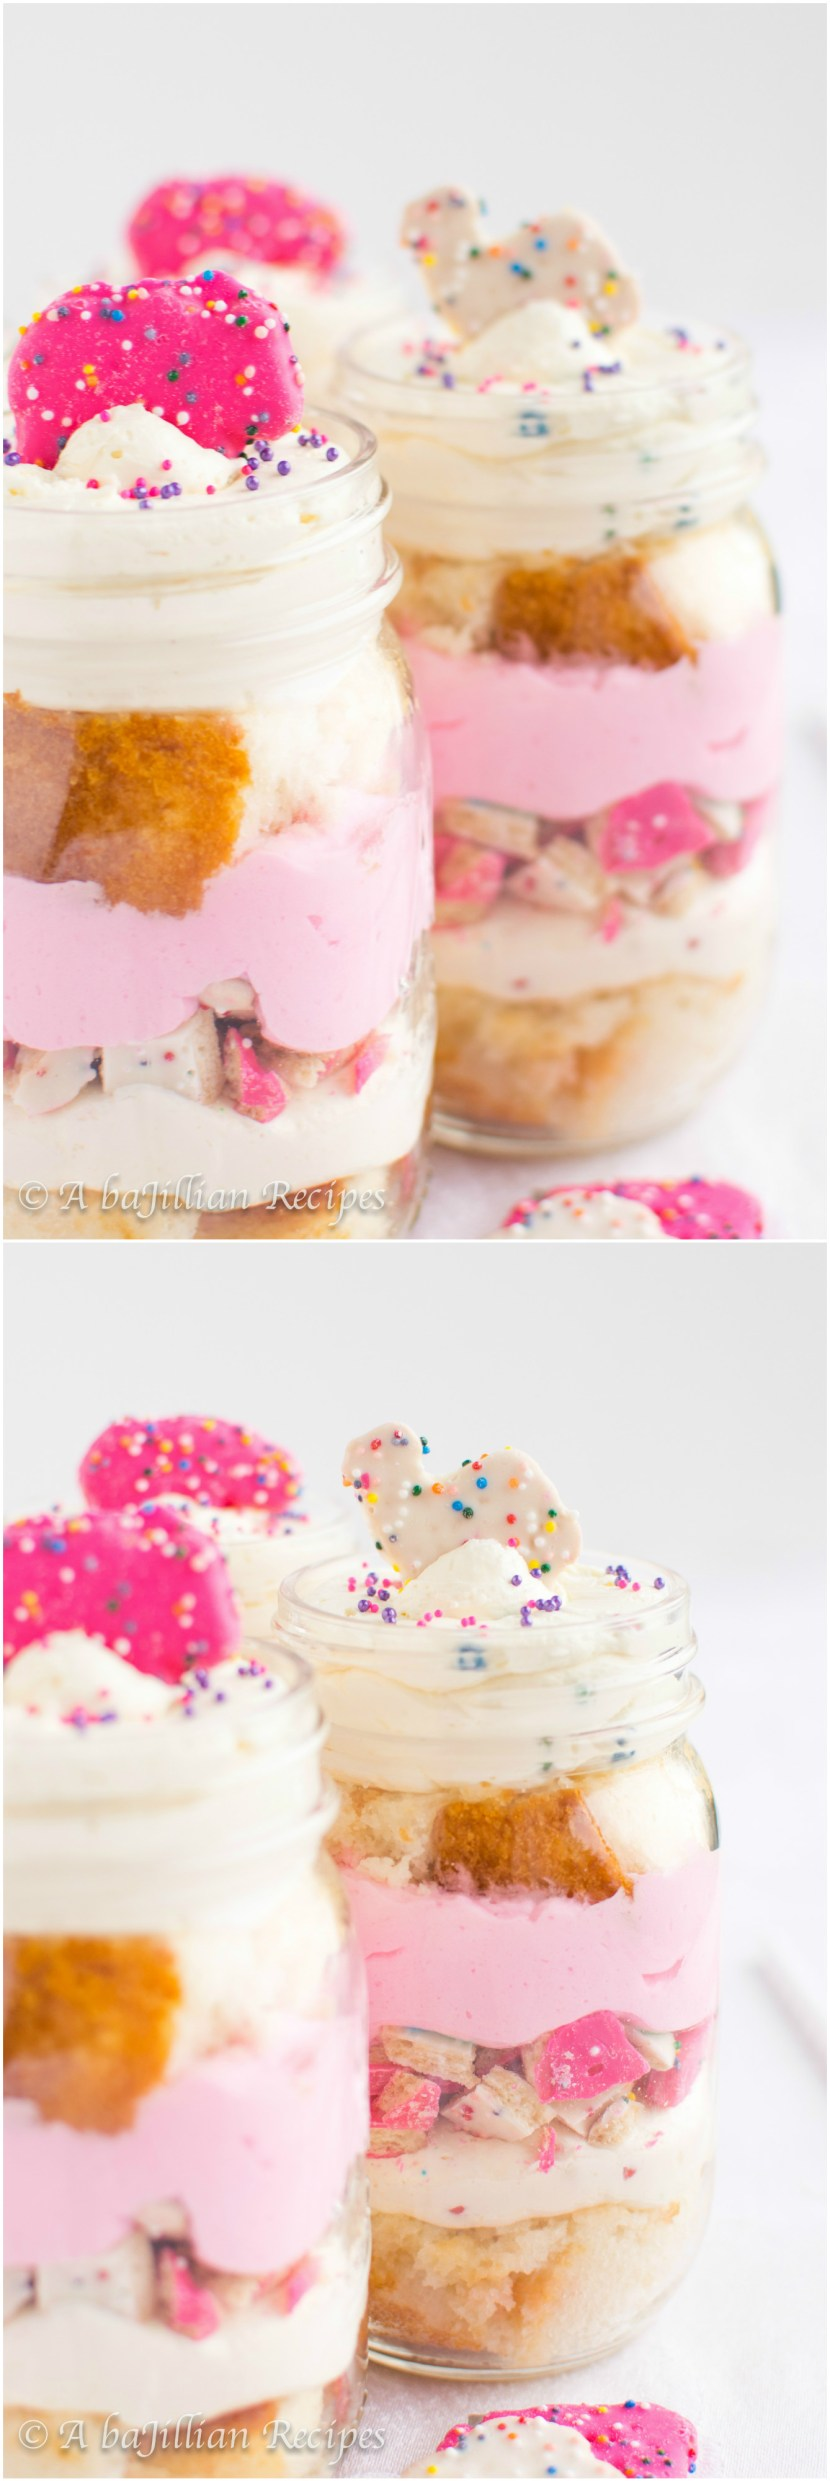 Circus-Animal-Mini-Trifles-abajillianrecipes.com